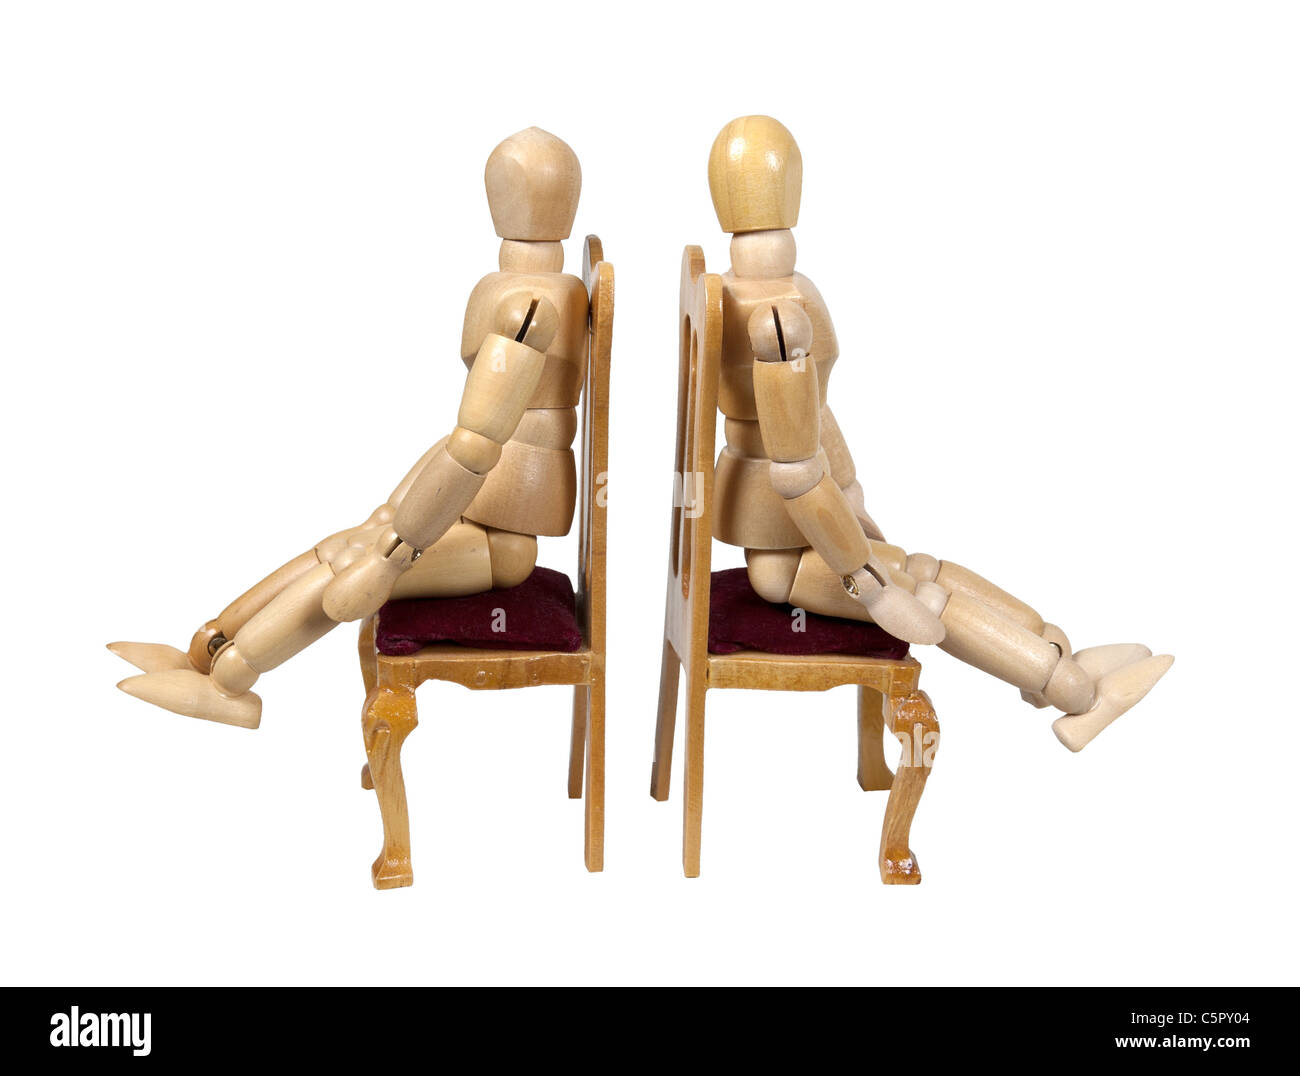 Disagreement shown by two people sitting in chair facing away from each other - path included - Stock Image